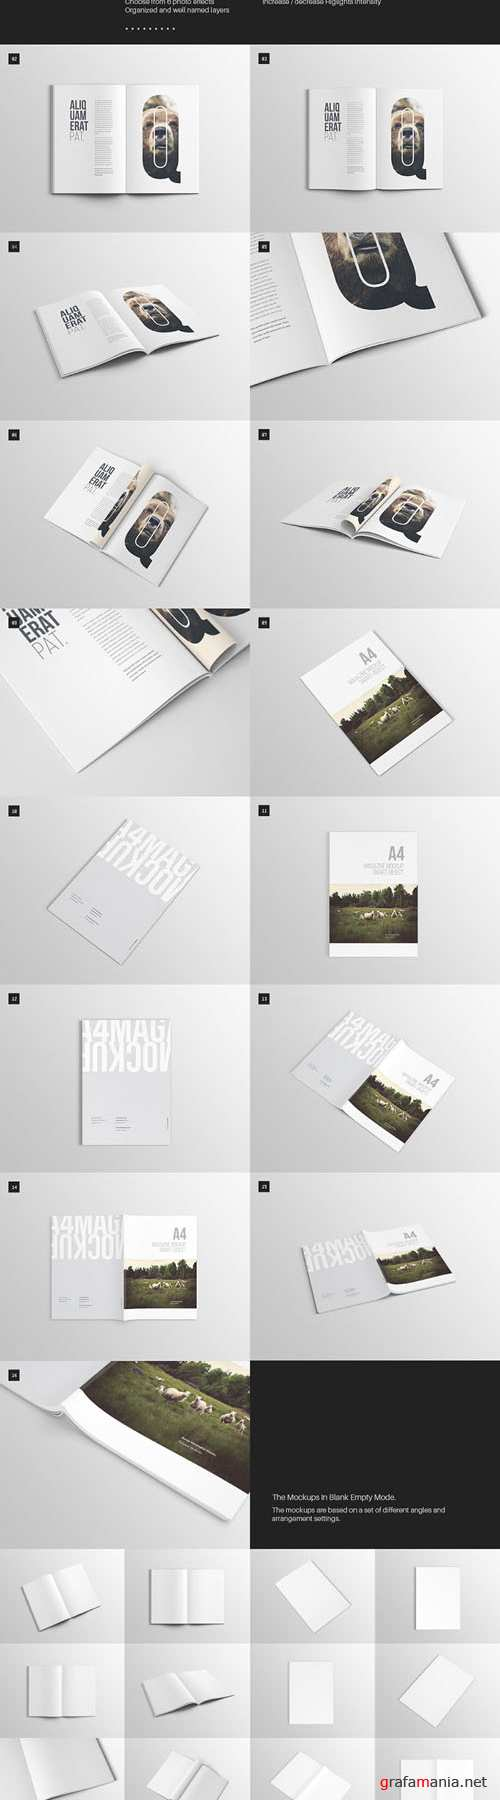 16 Quality A4 Magazine Mock-up Templates